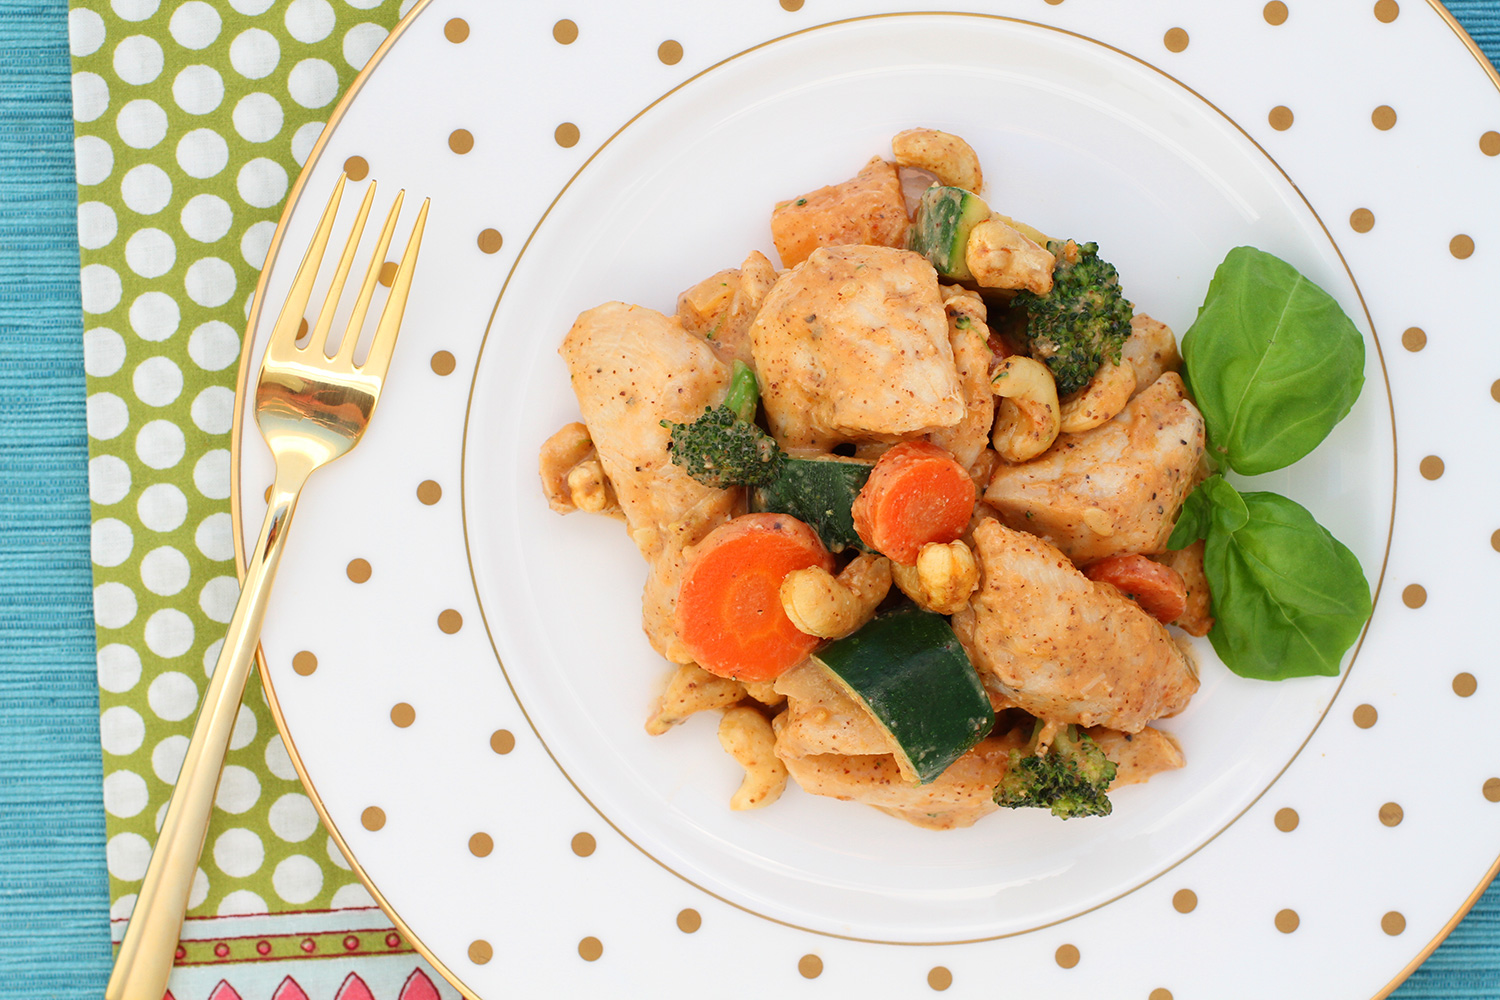 Chicken Stir Fry with Cashews